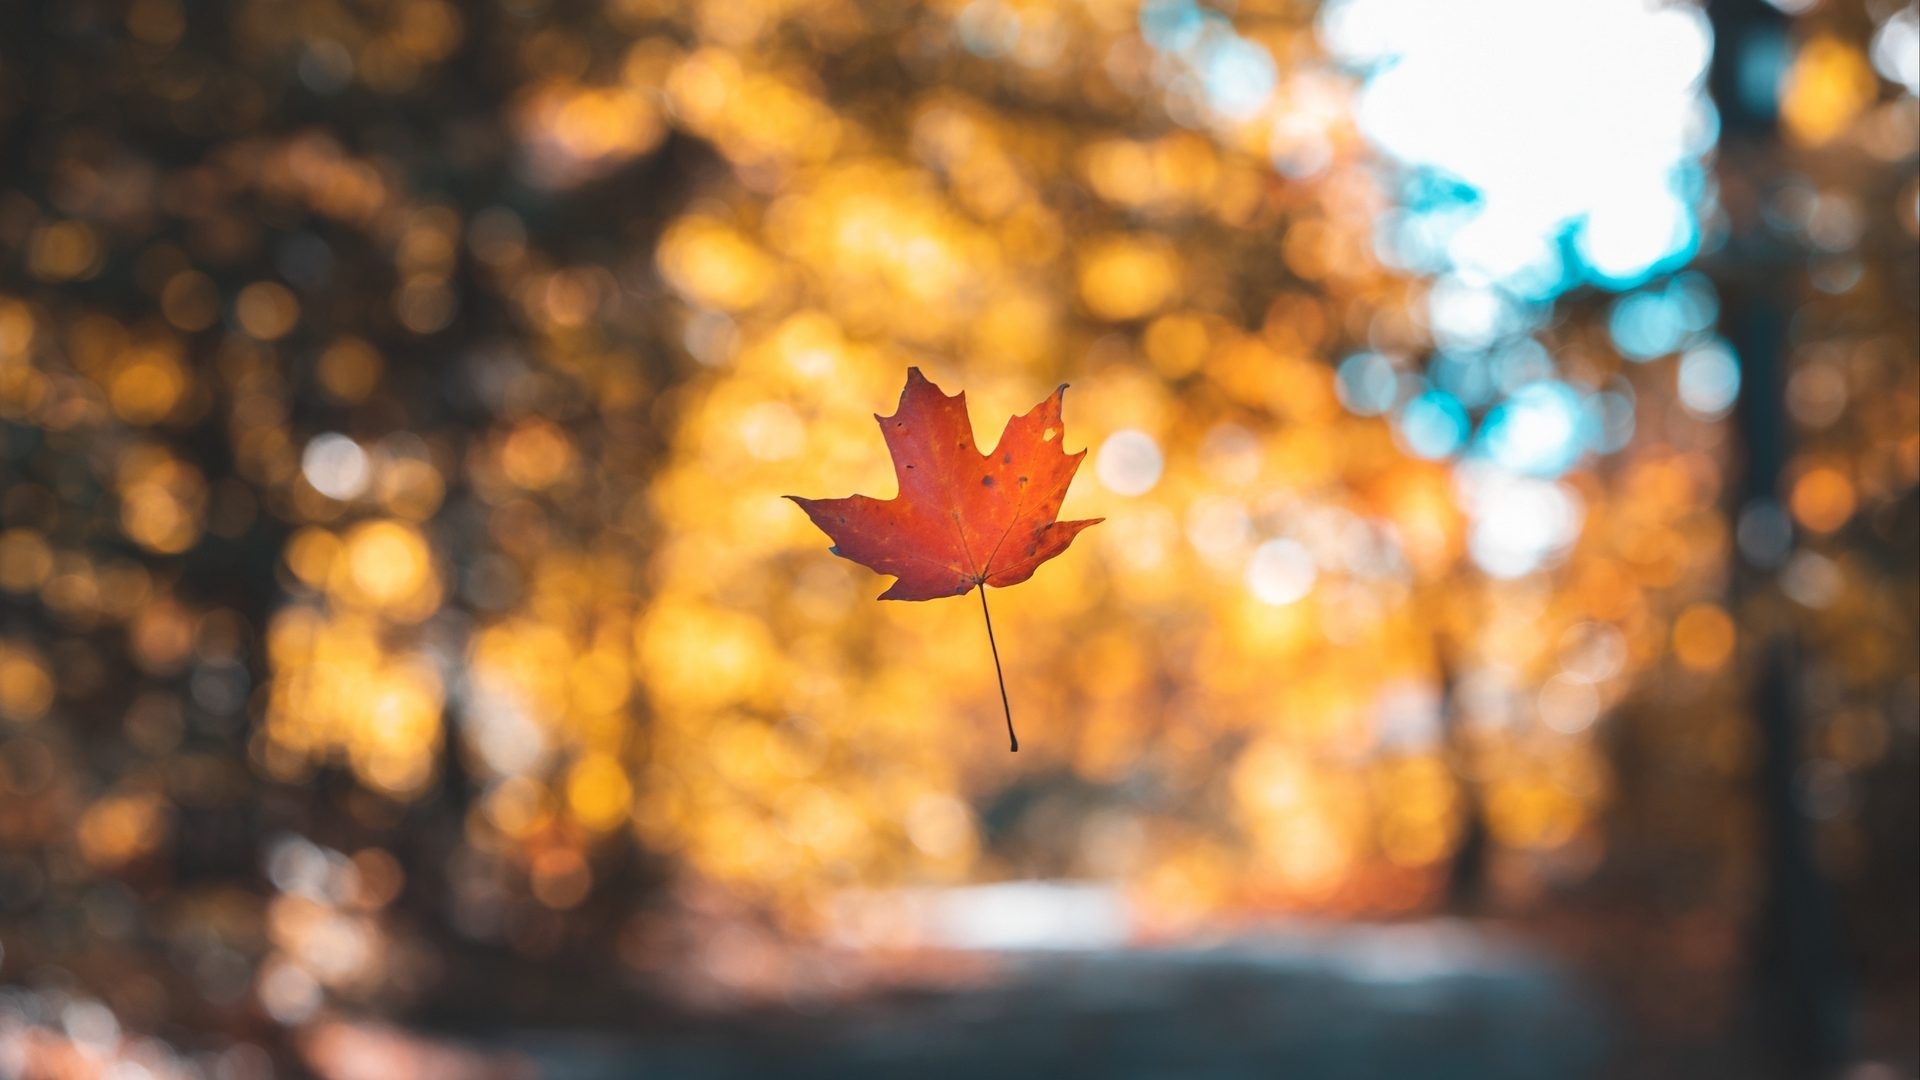 Maple Leaf Wallpaper Hd Wallpapers Stores